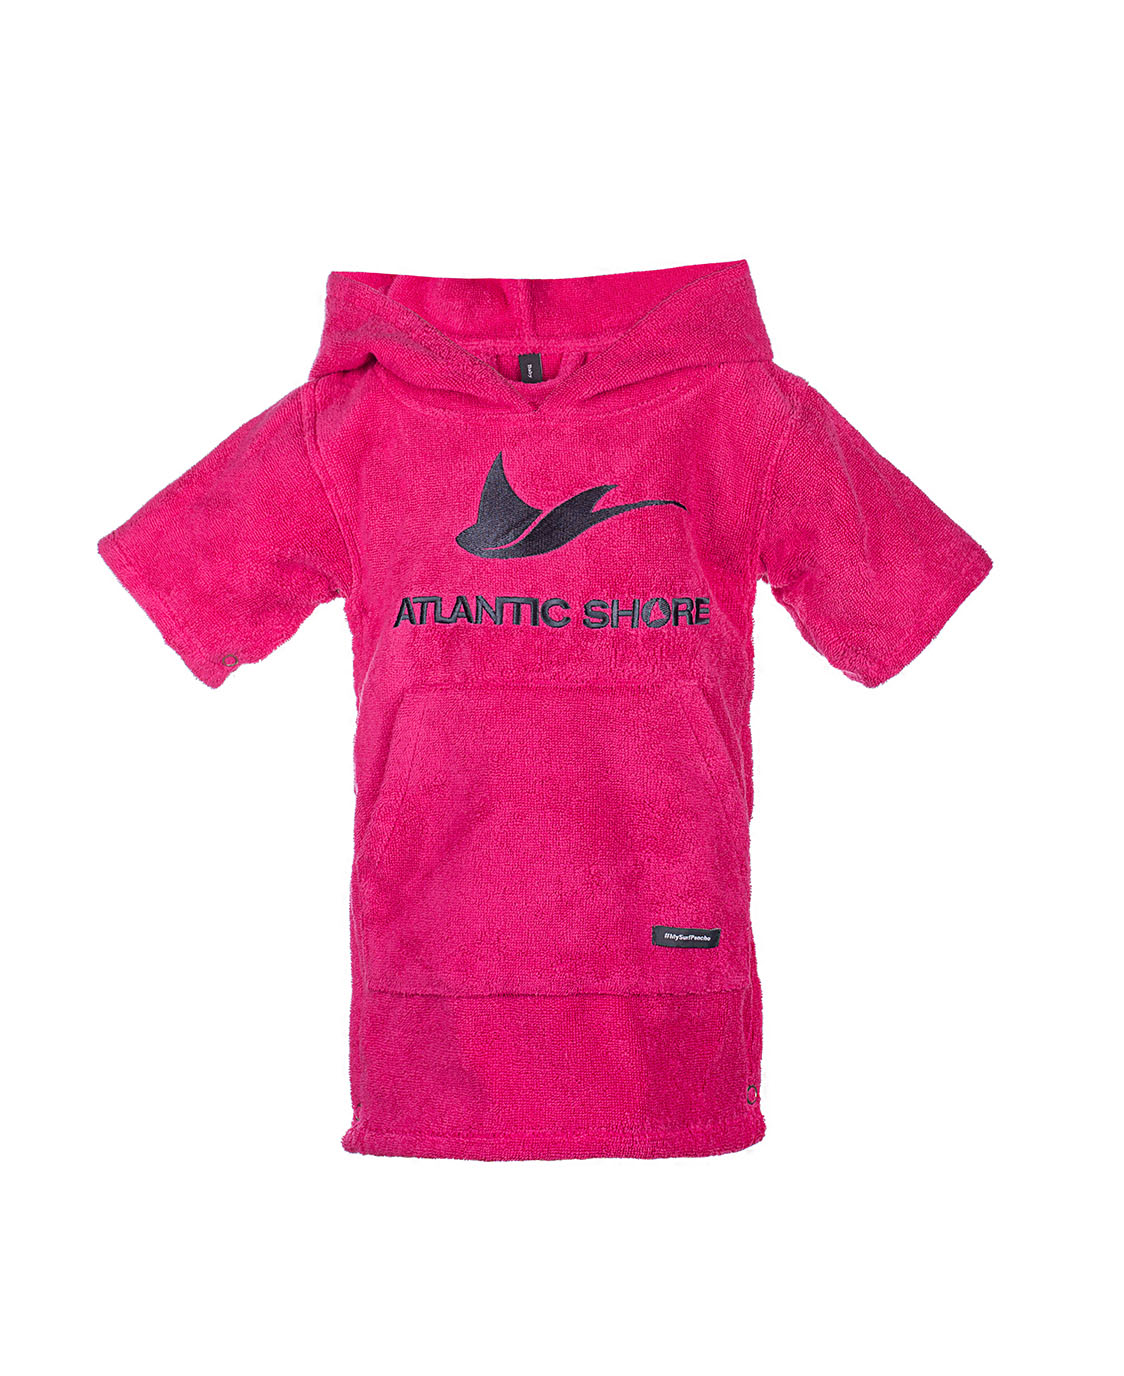 Atlantic Shore | Surf Poncho | Basic | Baby | Pink